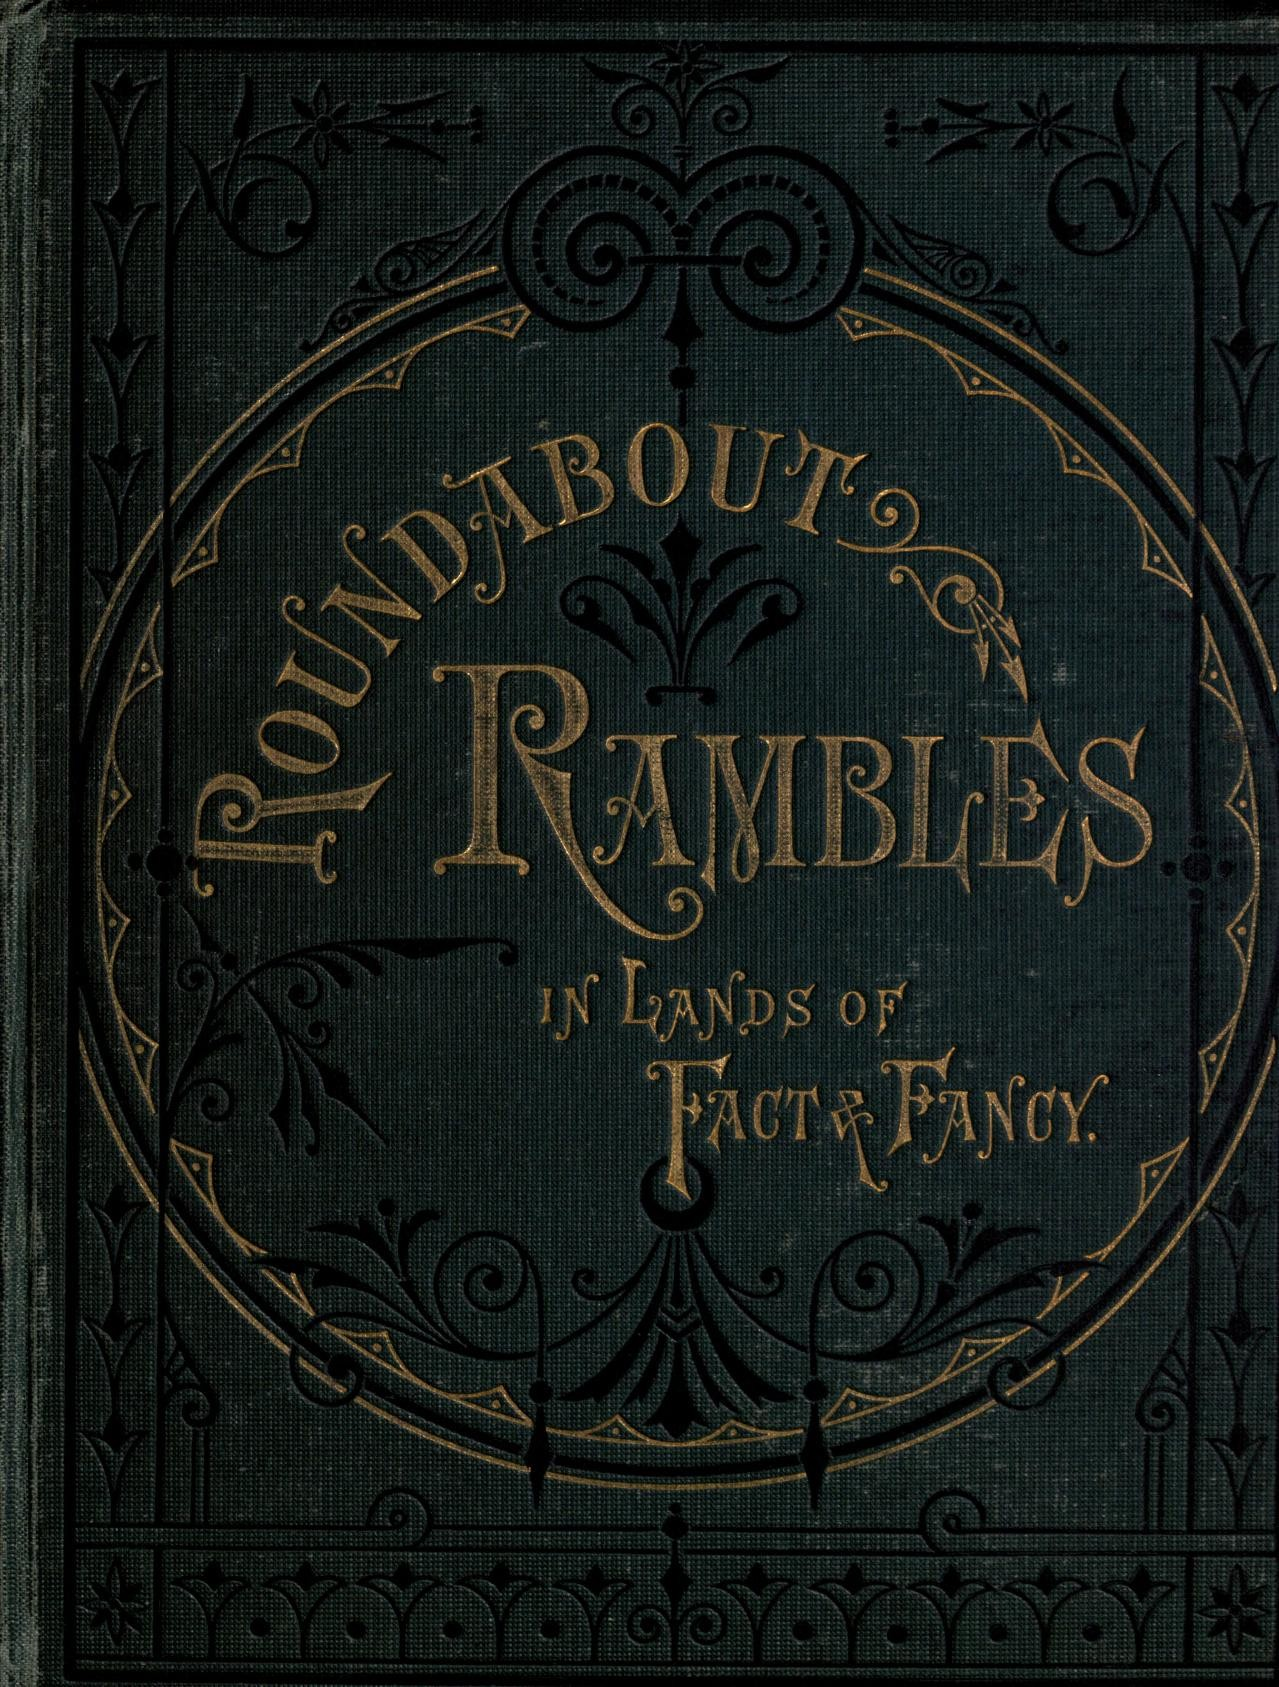 round-about_rambles_in_lands_of_fact_and_fancy-_djvu_pg_001.jpg